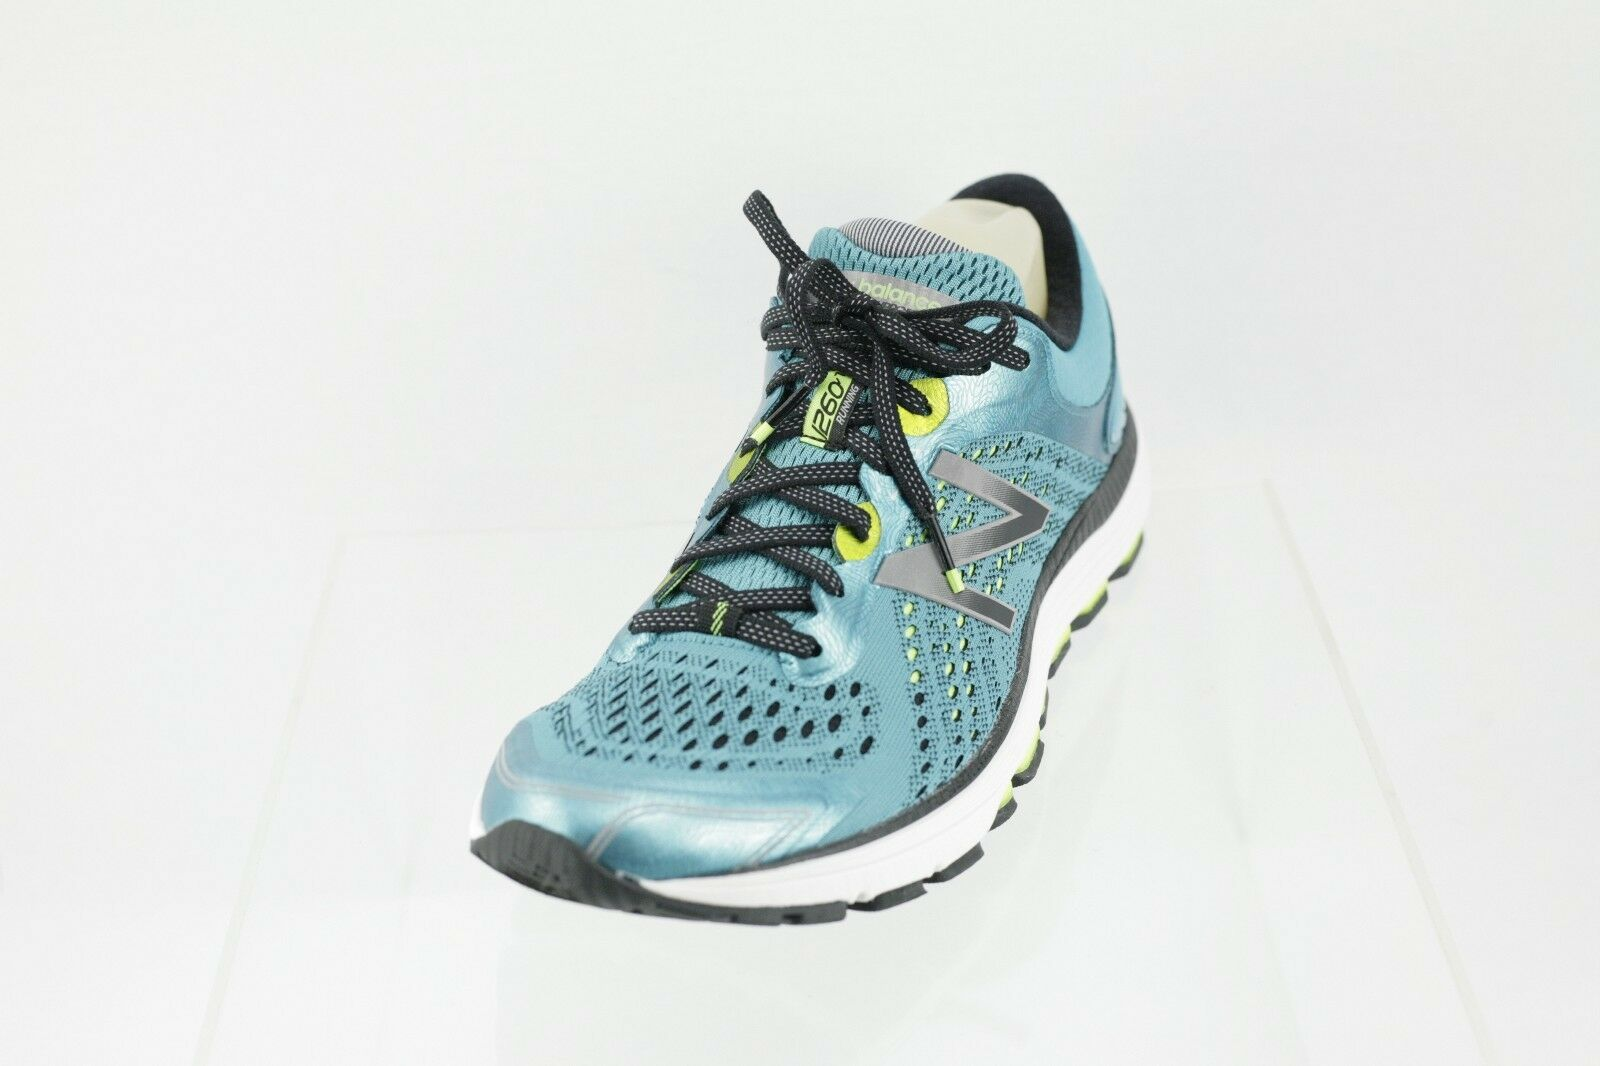 Women's New Balance W1260BY7 2A Turquoise Running shoes Size 11.5 M